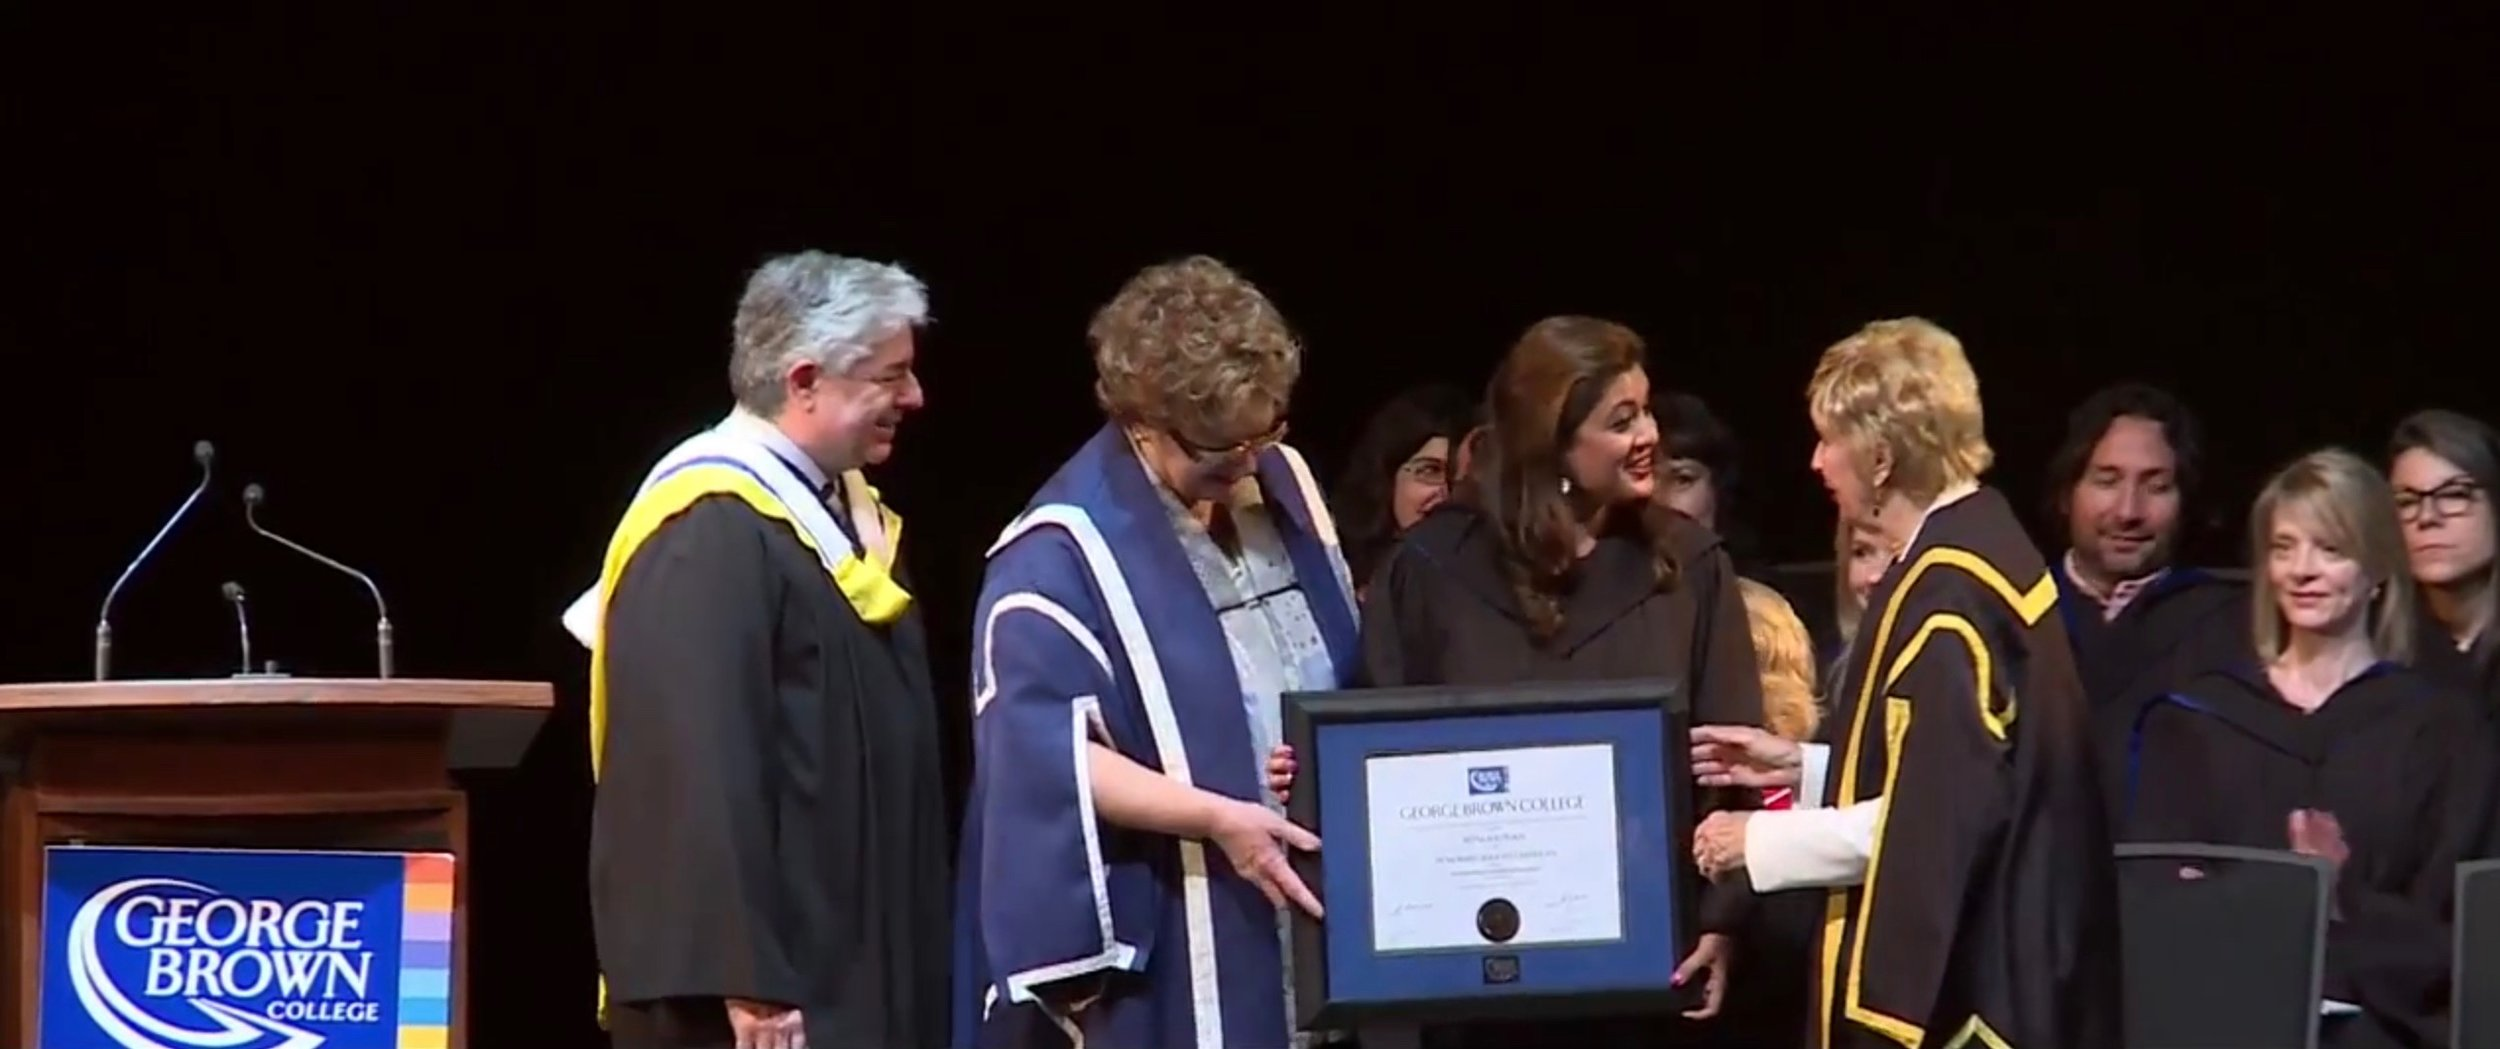 Reena Ahluwalia Recieving Fellow Award_Honarary Degree_George Brown College 3.jpg